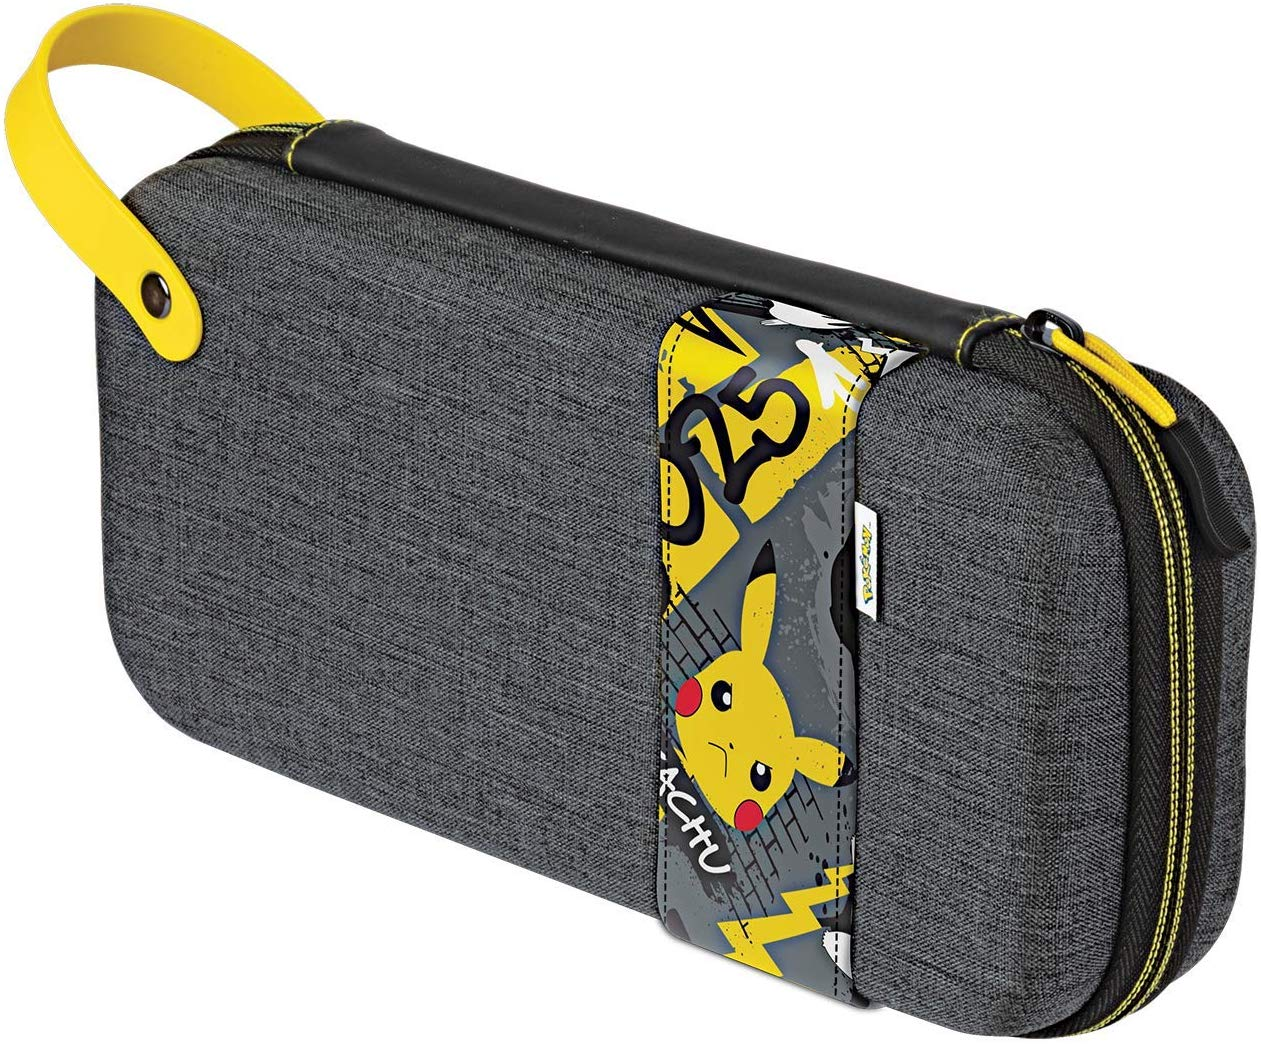 PDP releasing Switch Deluxe Travel Case 'Elite' and 'Pikachu' editions